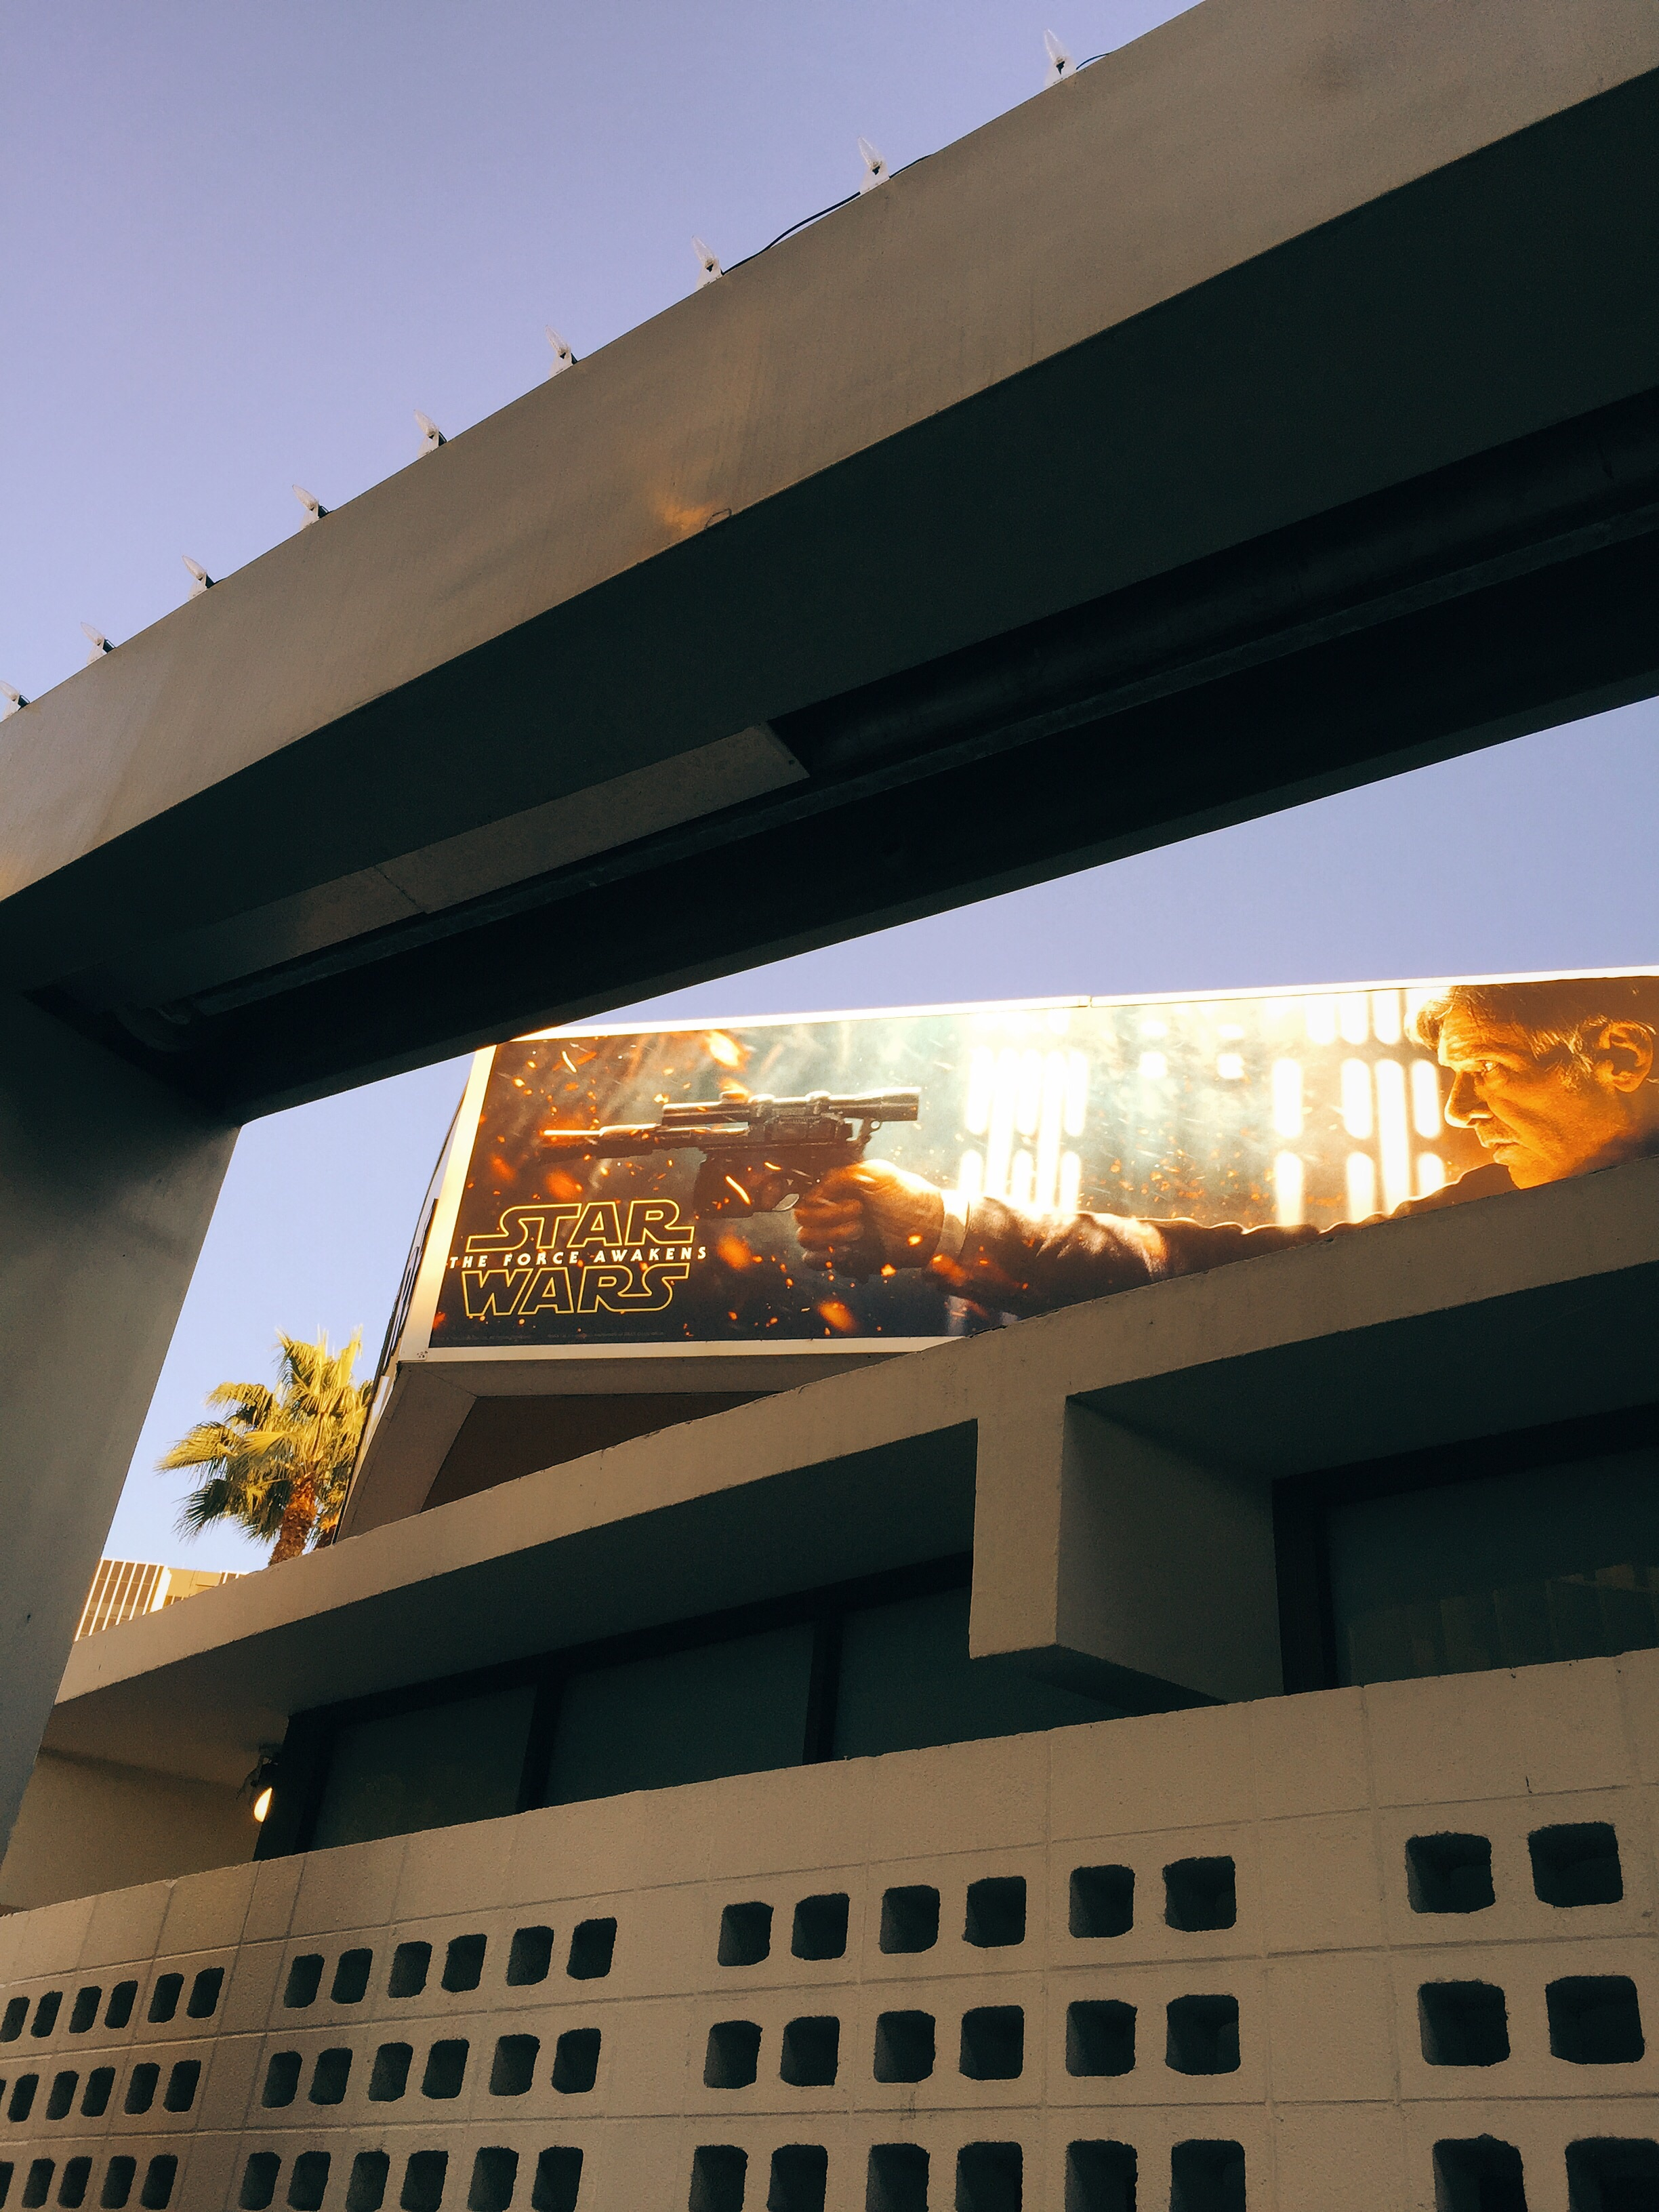 Outside the Arclight theater in Hollywood, CA.